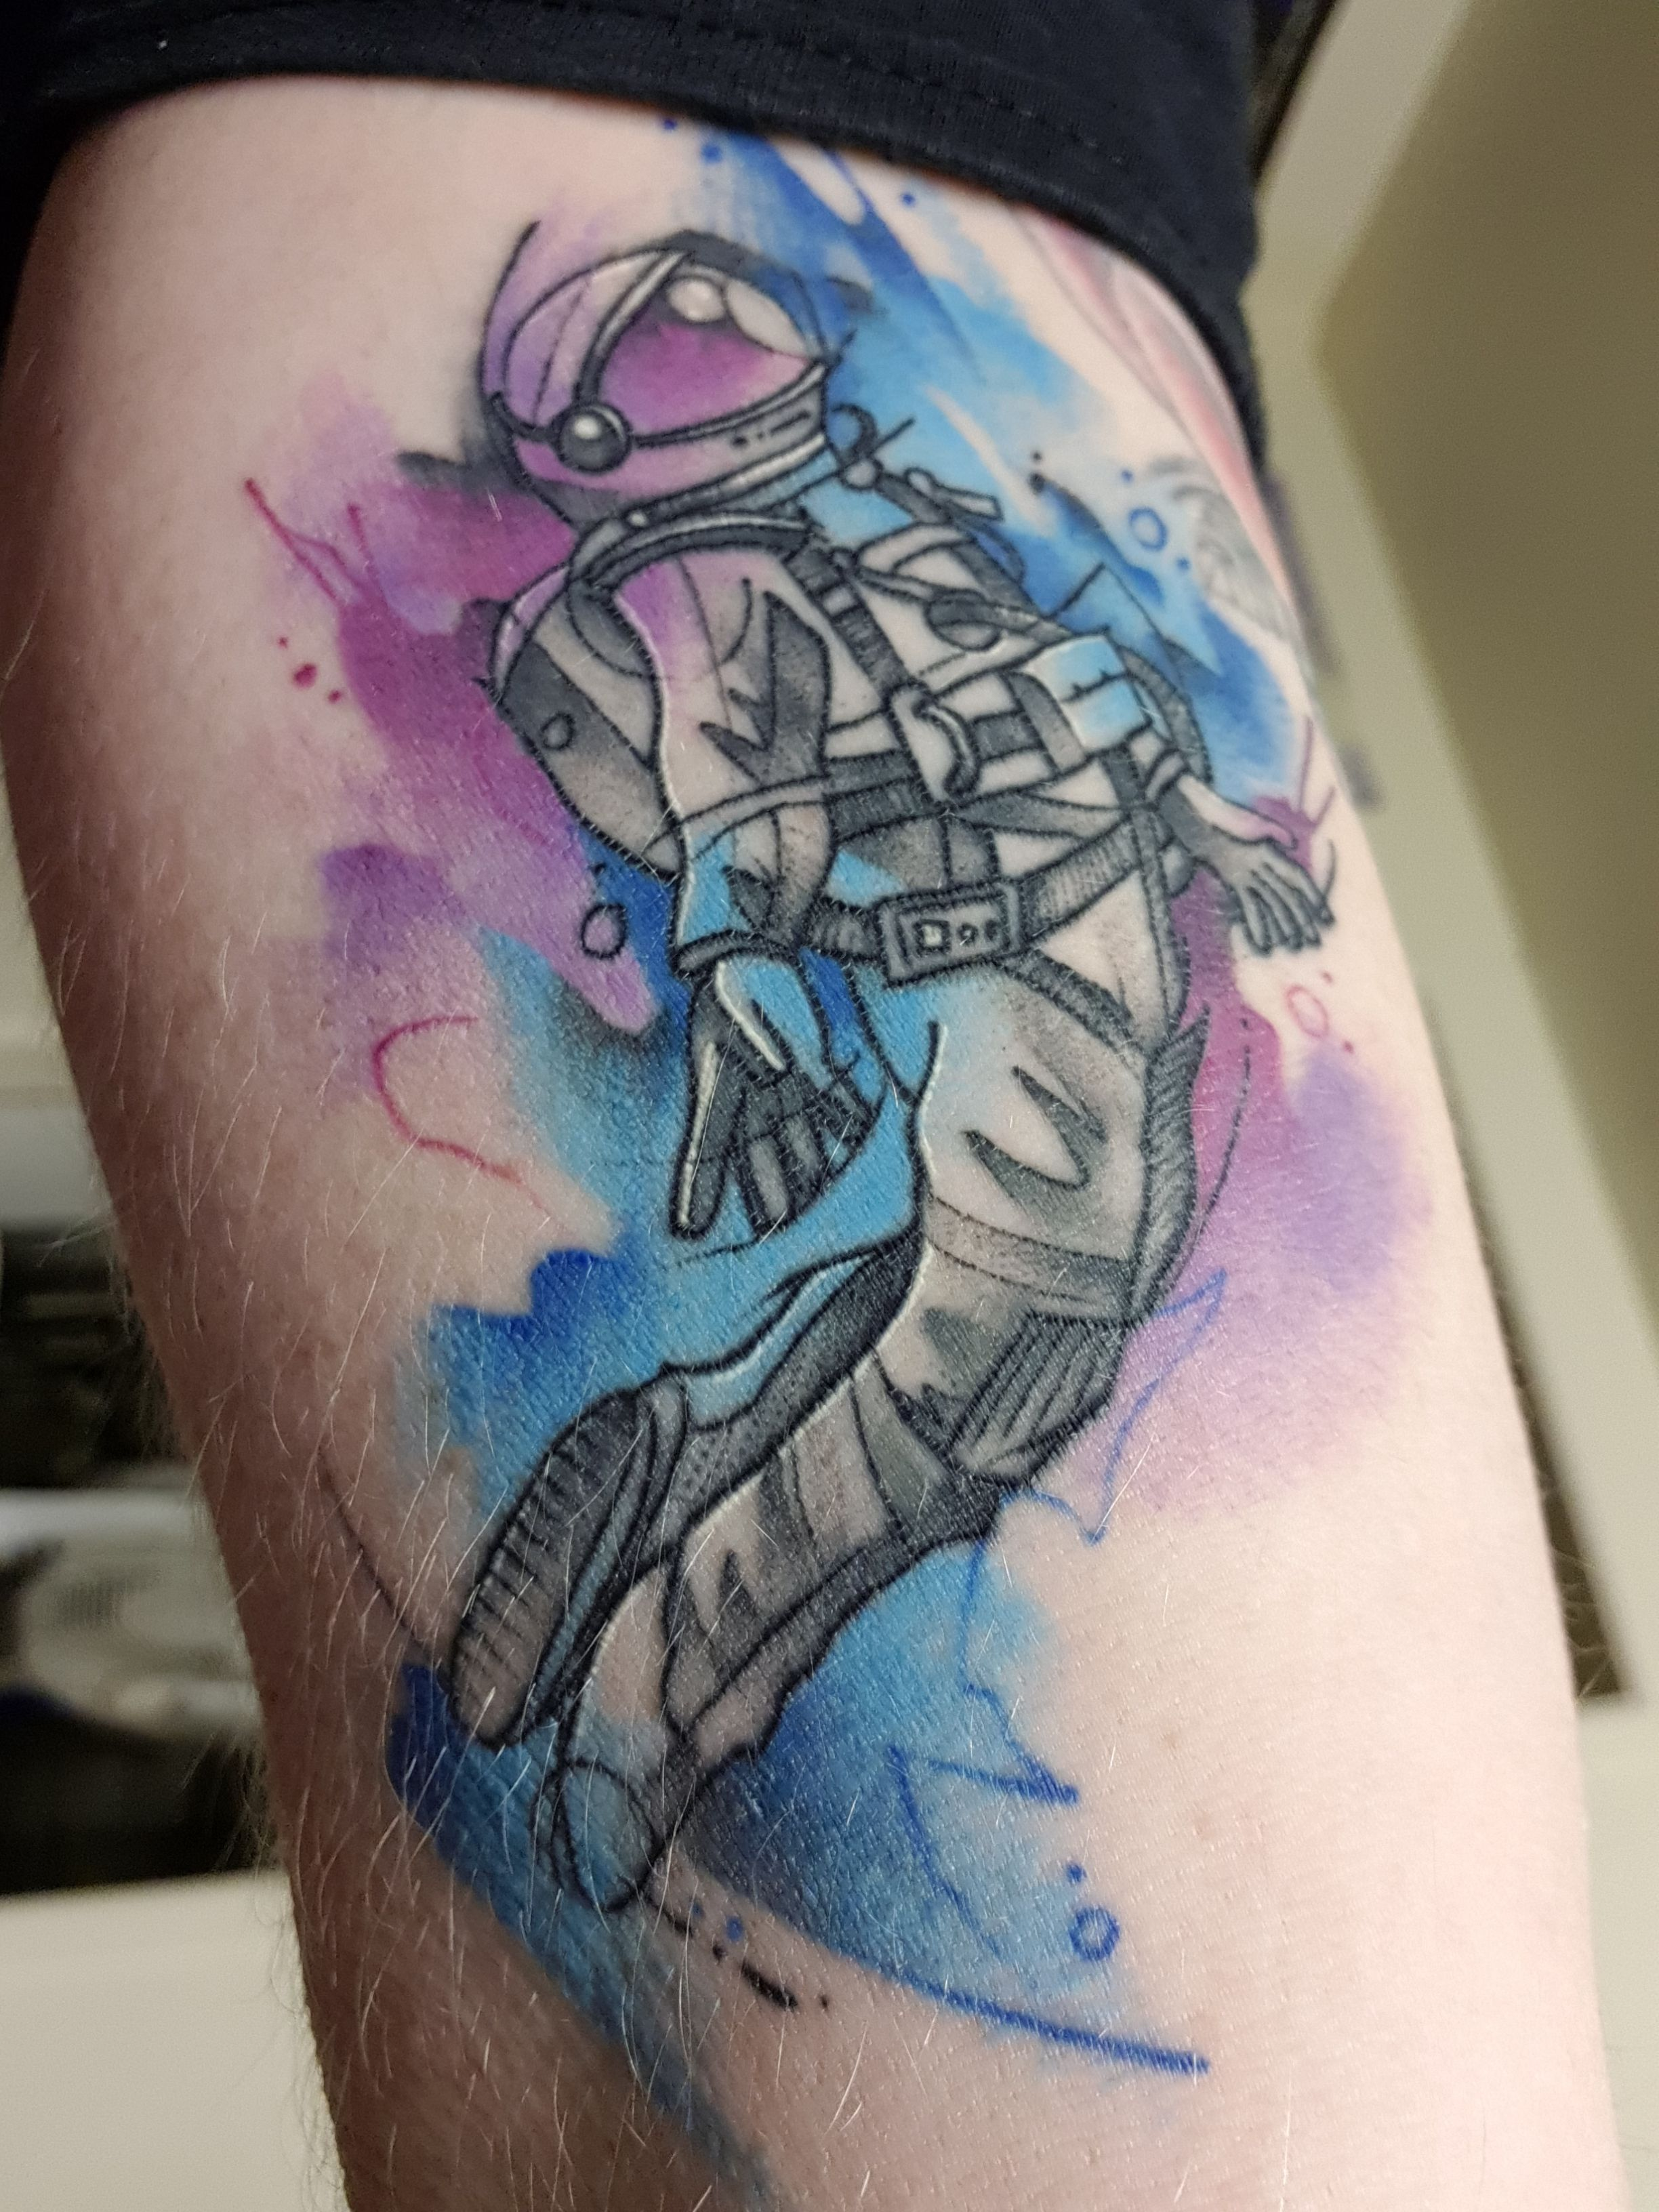 Astronaut By Ali At Serpents Ink Gold Coast Qld Aust